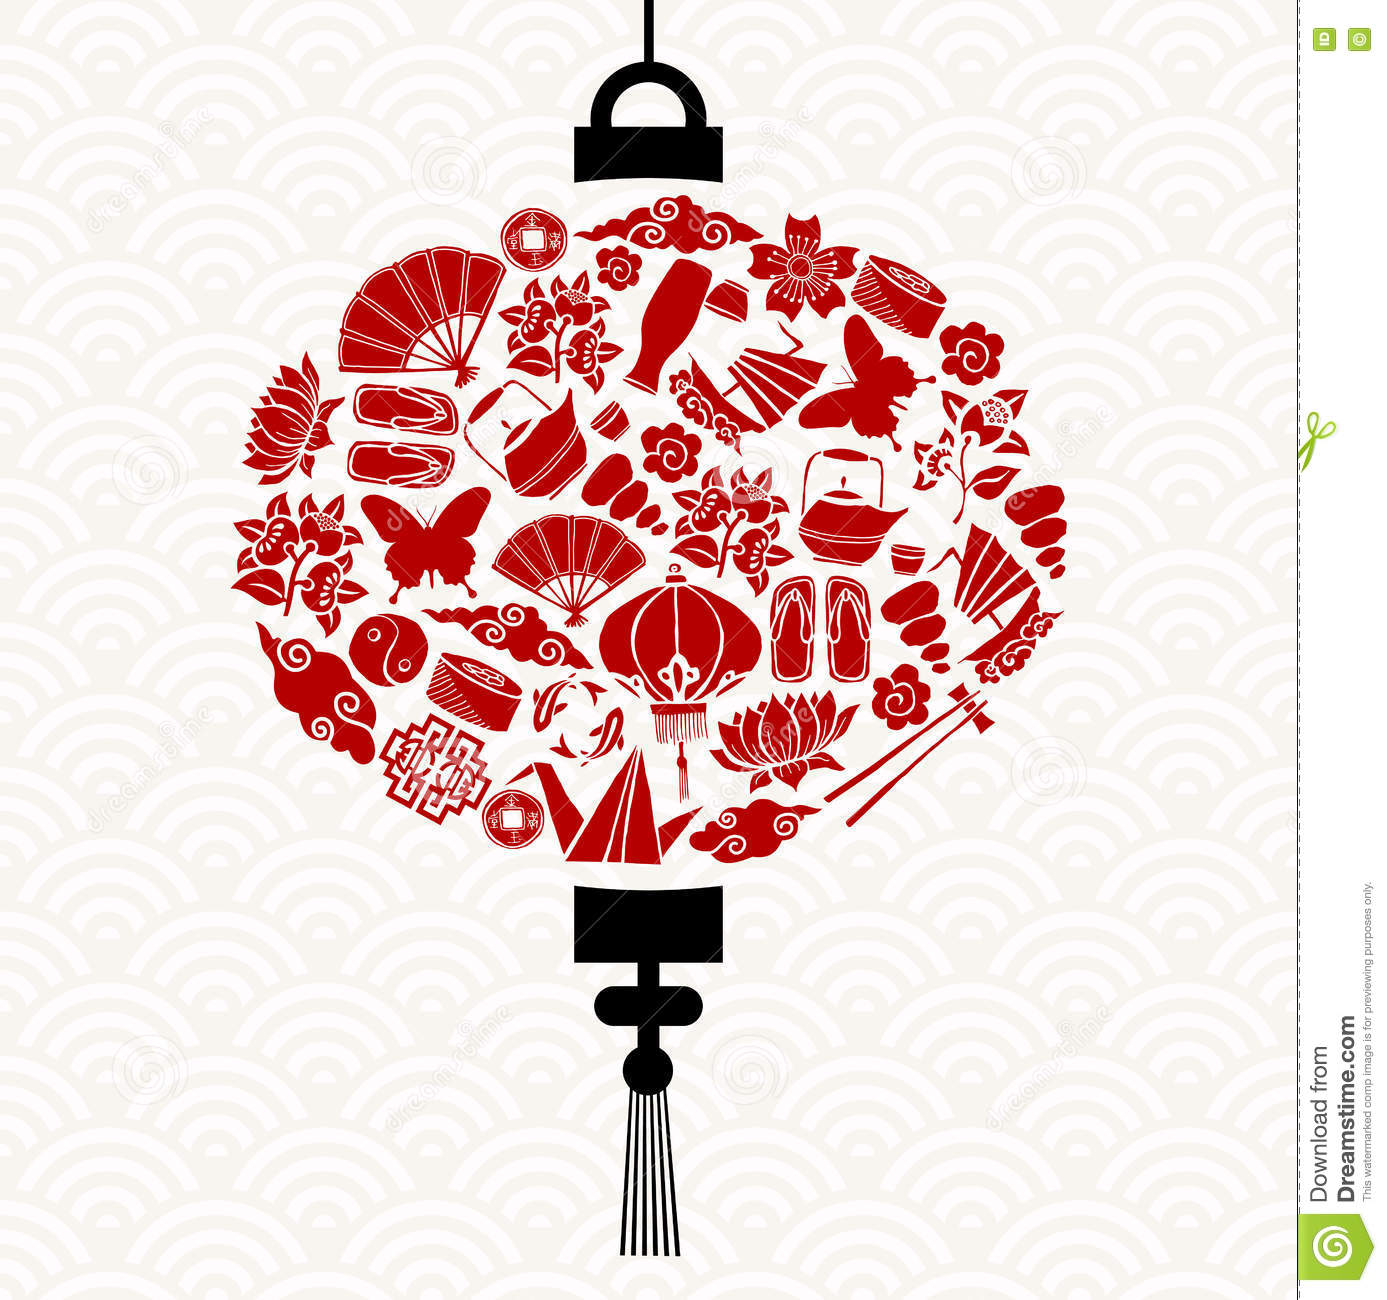 chinese new year lantern with red asian icons - Chinese New Year Lantern